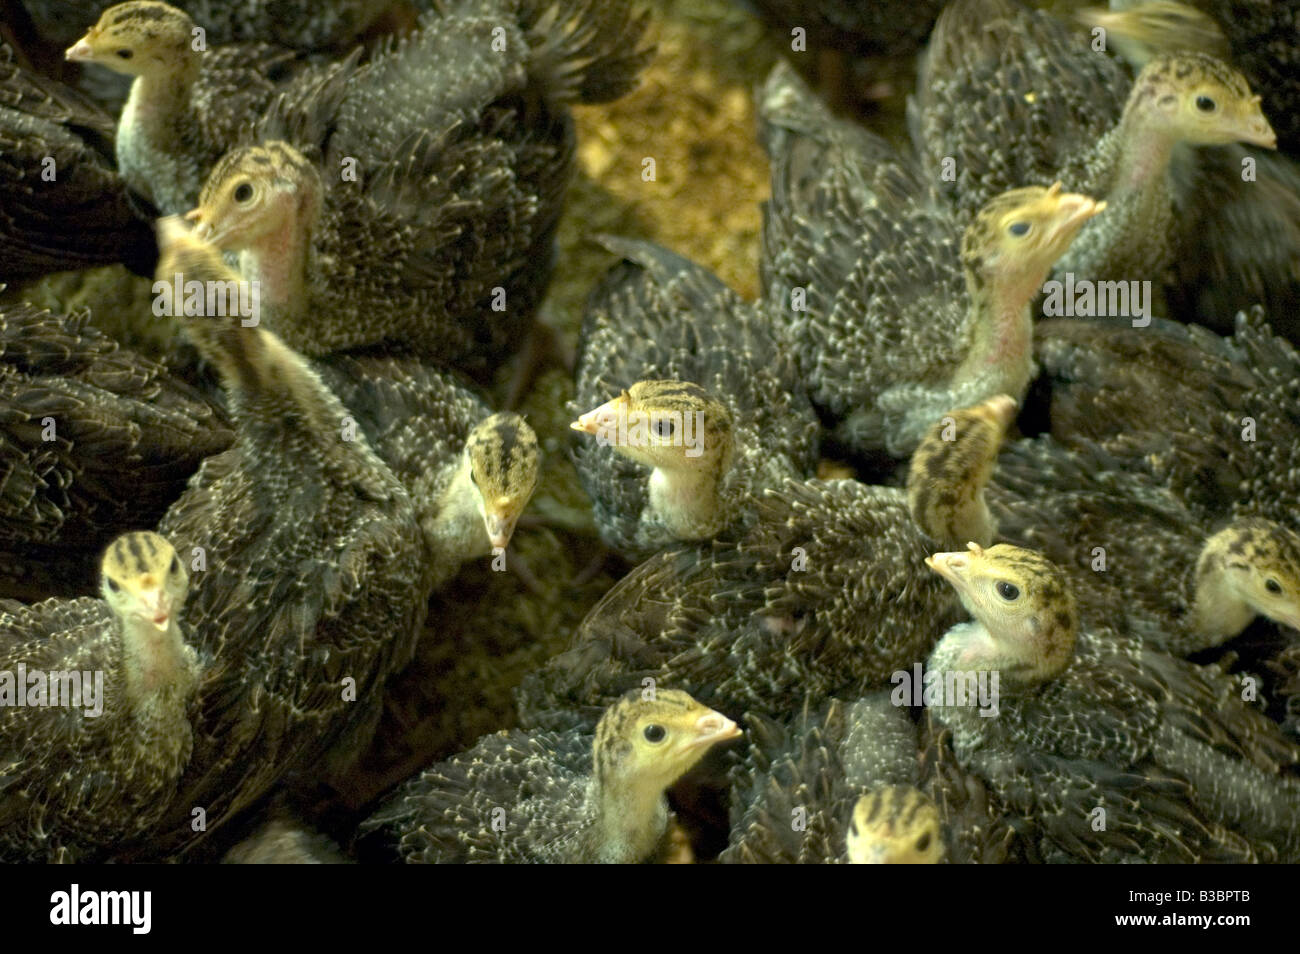 Freerange bronze turkey chicks destined for the Christmas table in a barn in Northamptonshire - Stock Image